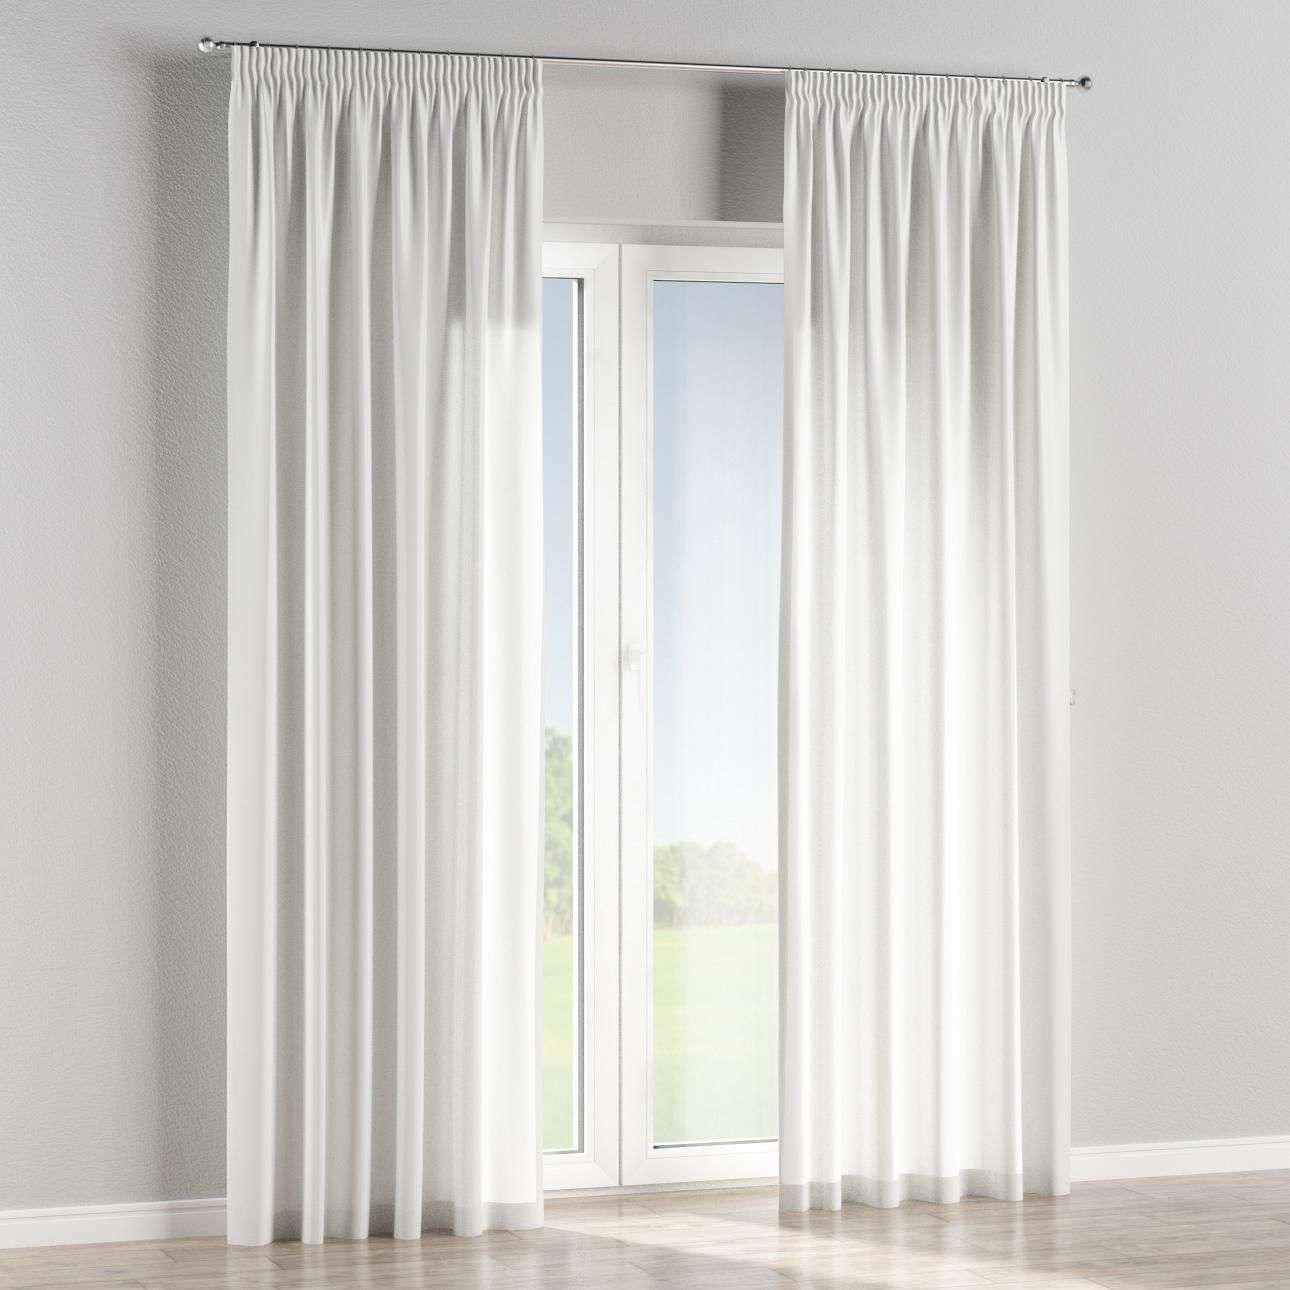 Pencil pleat curtains in collection Mirella, fabric: 141-11